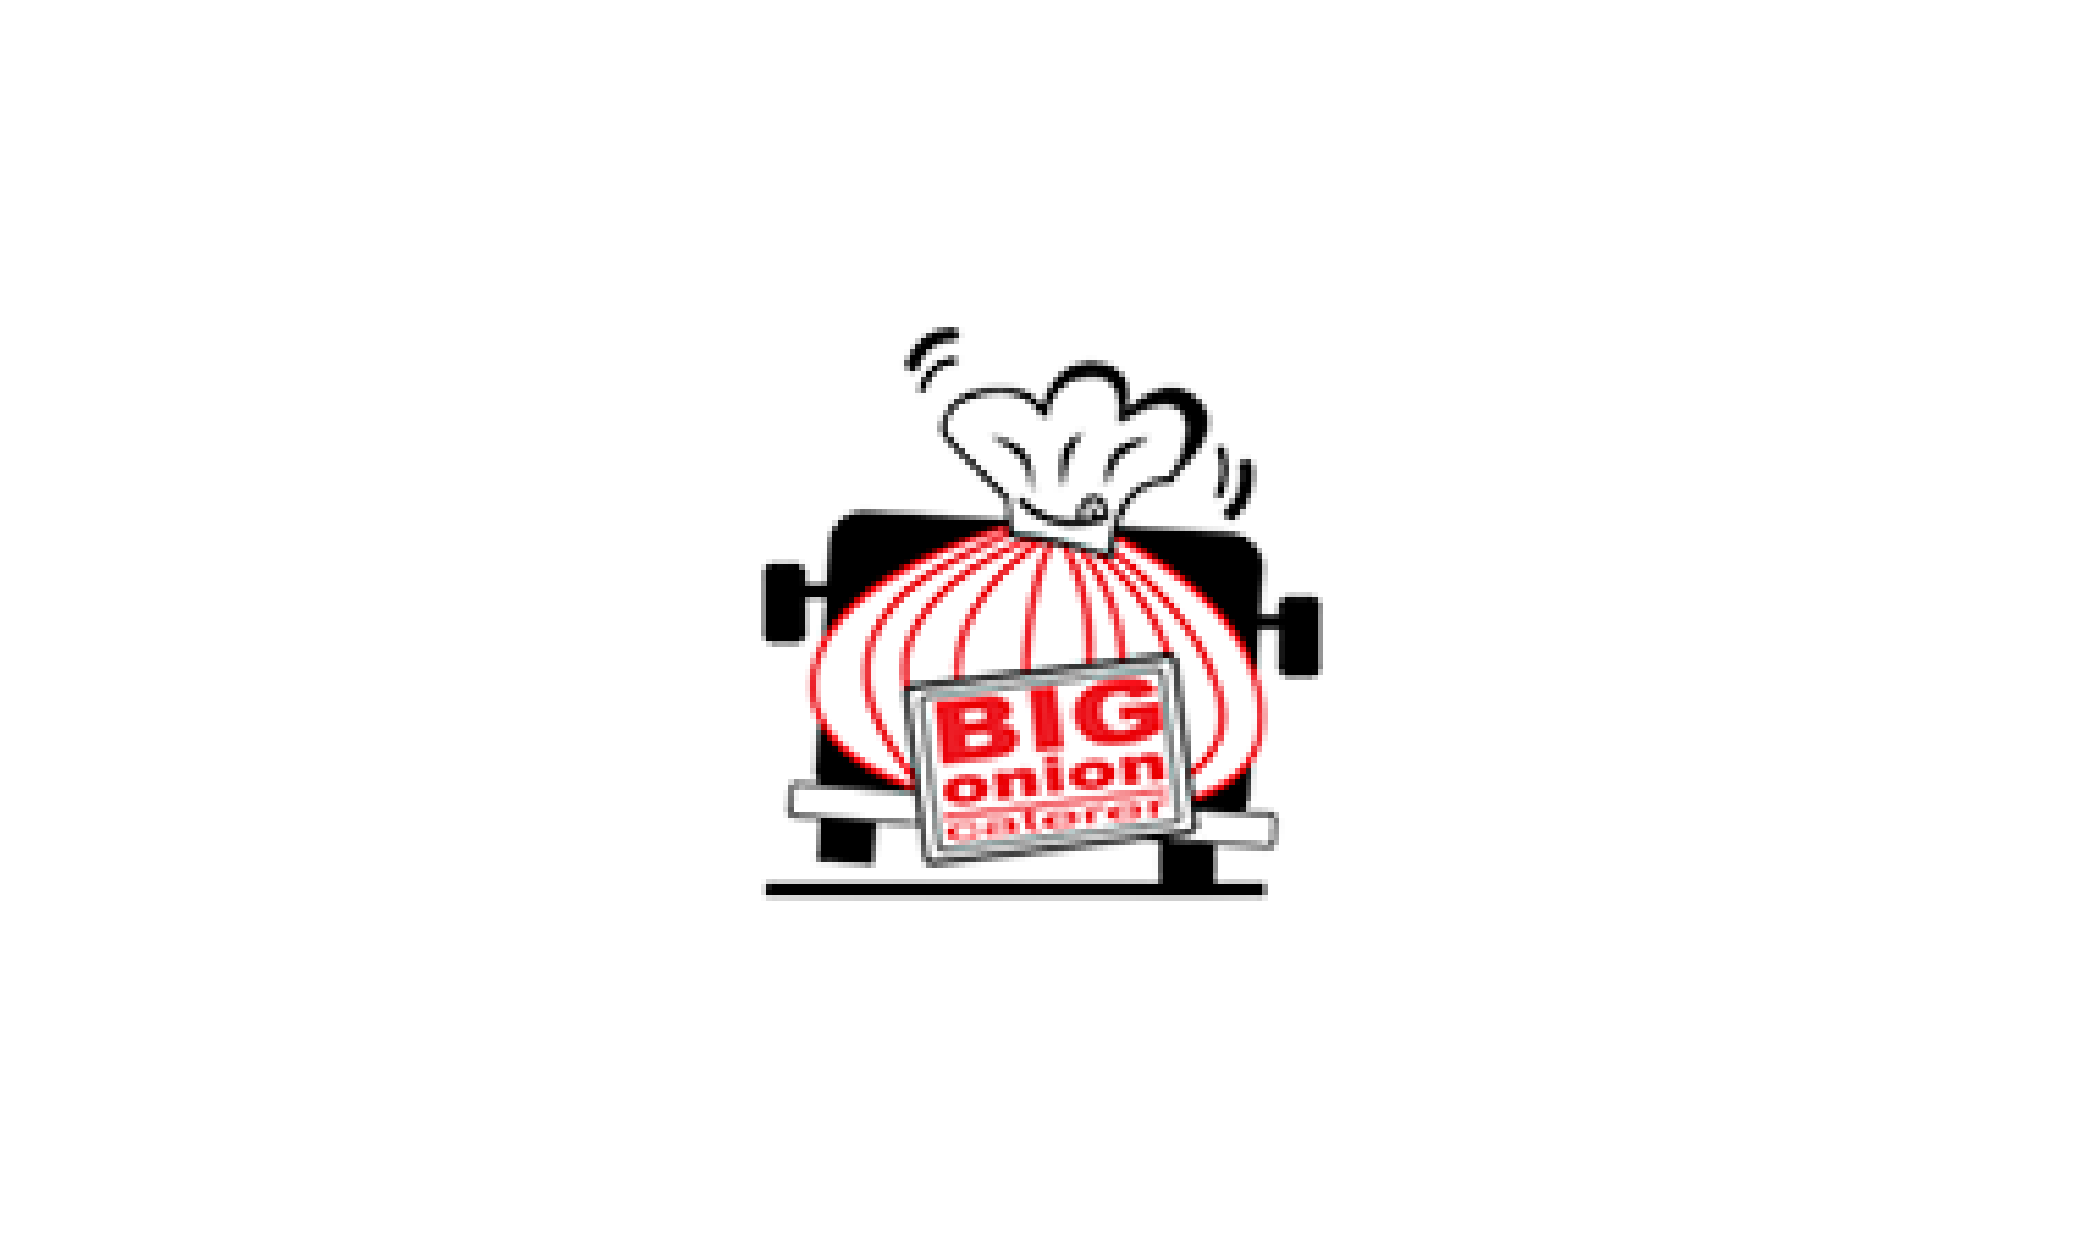 Big Onion Food Caterer